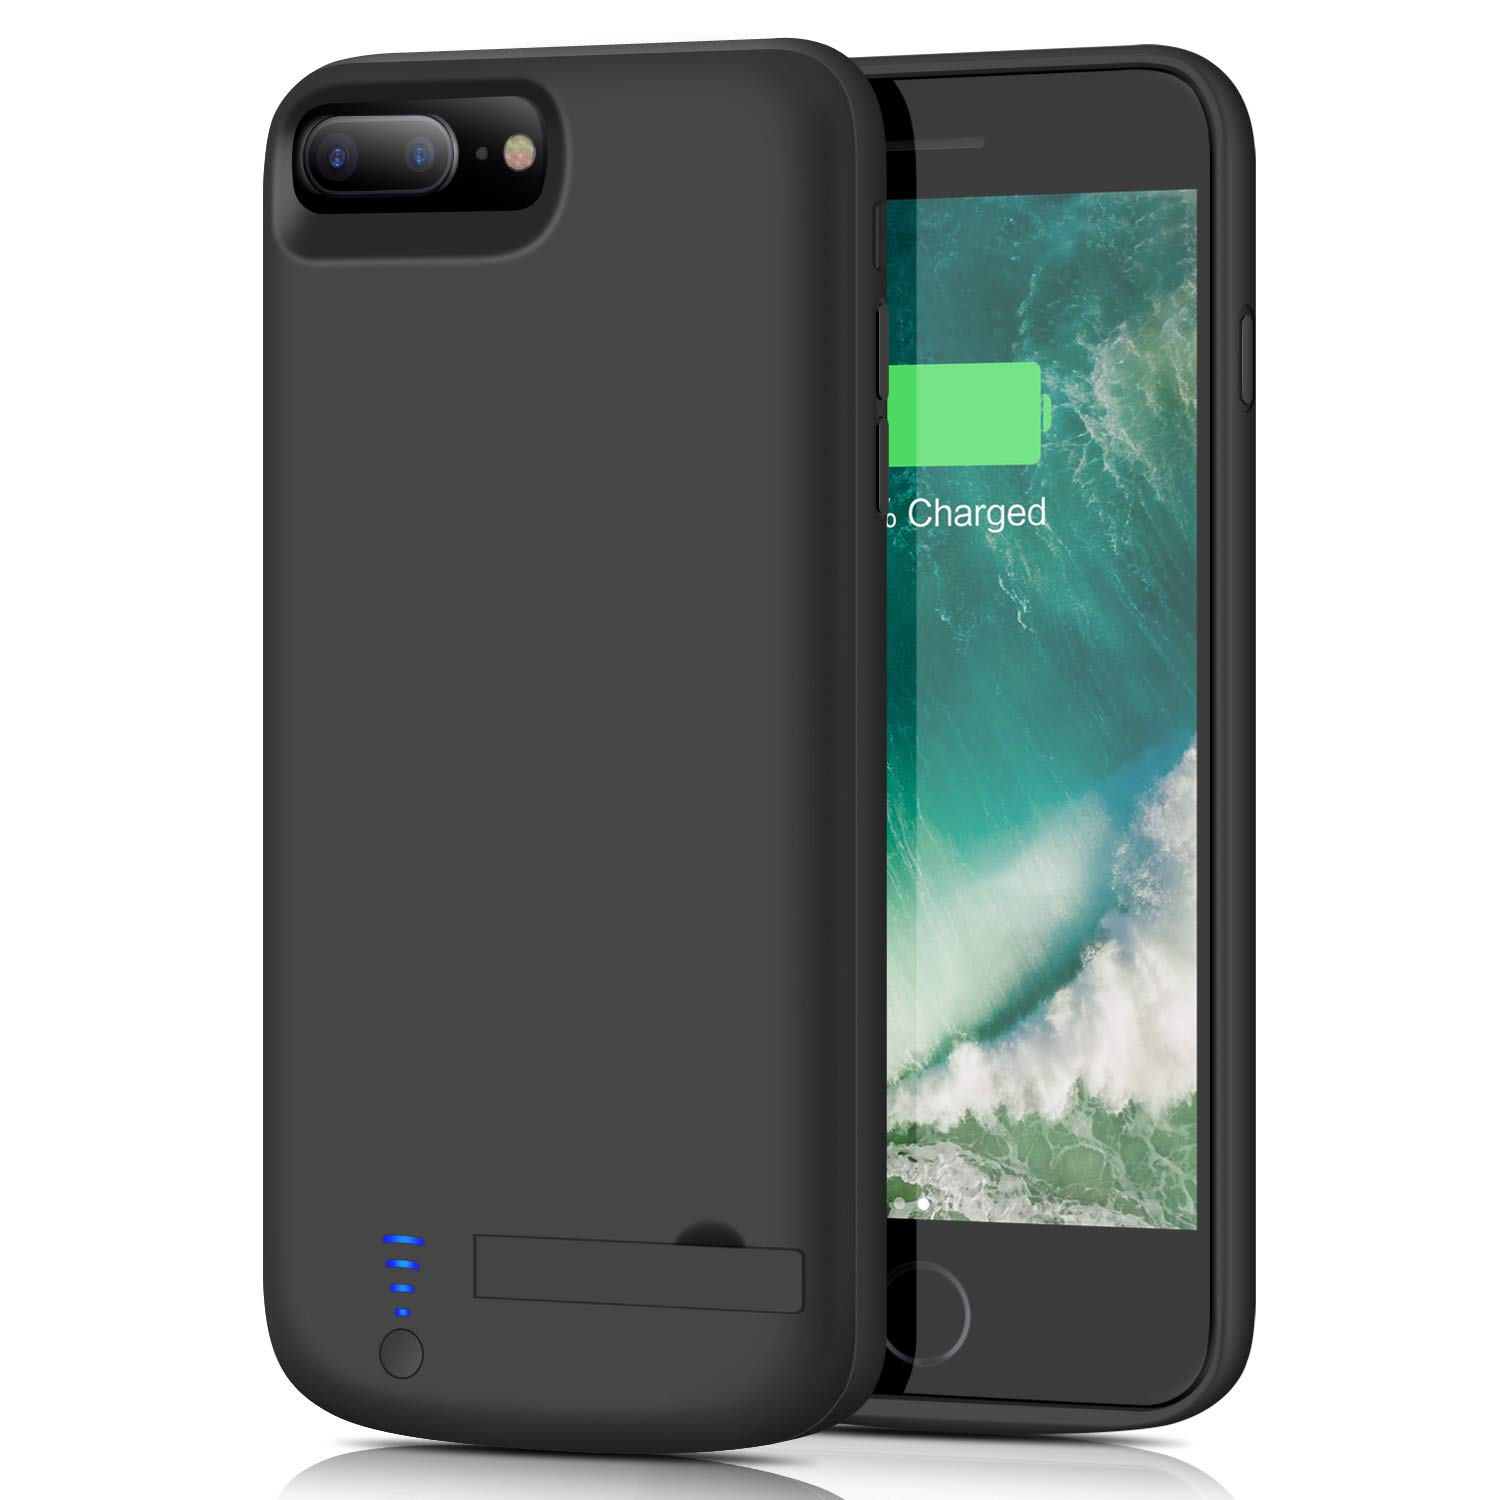 musttrue Battery Case for iPhone 8 Plus / 7 Plus, Upgraded [8000mAh] Portable Protective Charging Case for iPhone 8Plus & 7Plus Extended Backup Charger (5.5 inch)- Black by musttrue